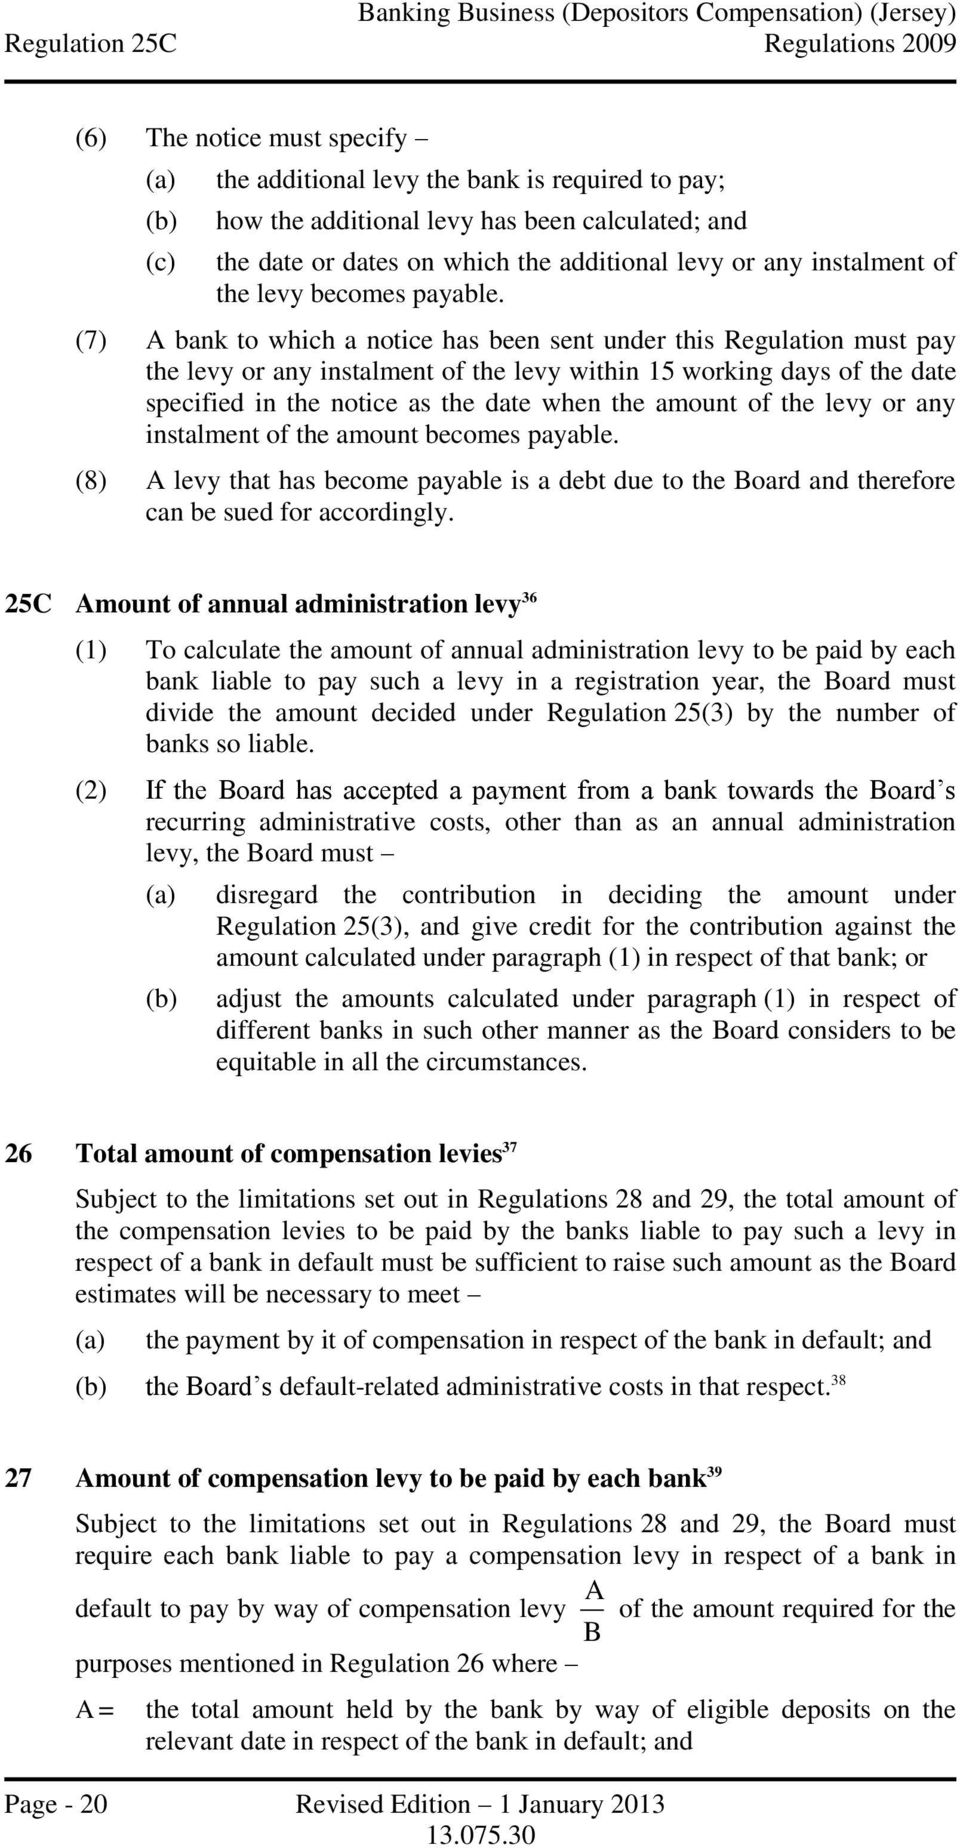 (7) A bank to which a notice has been sent under this Regulation must pay the levy or any instalment of the levy within 15 working days of the date specified in the notice as the date when the amount